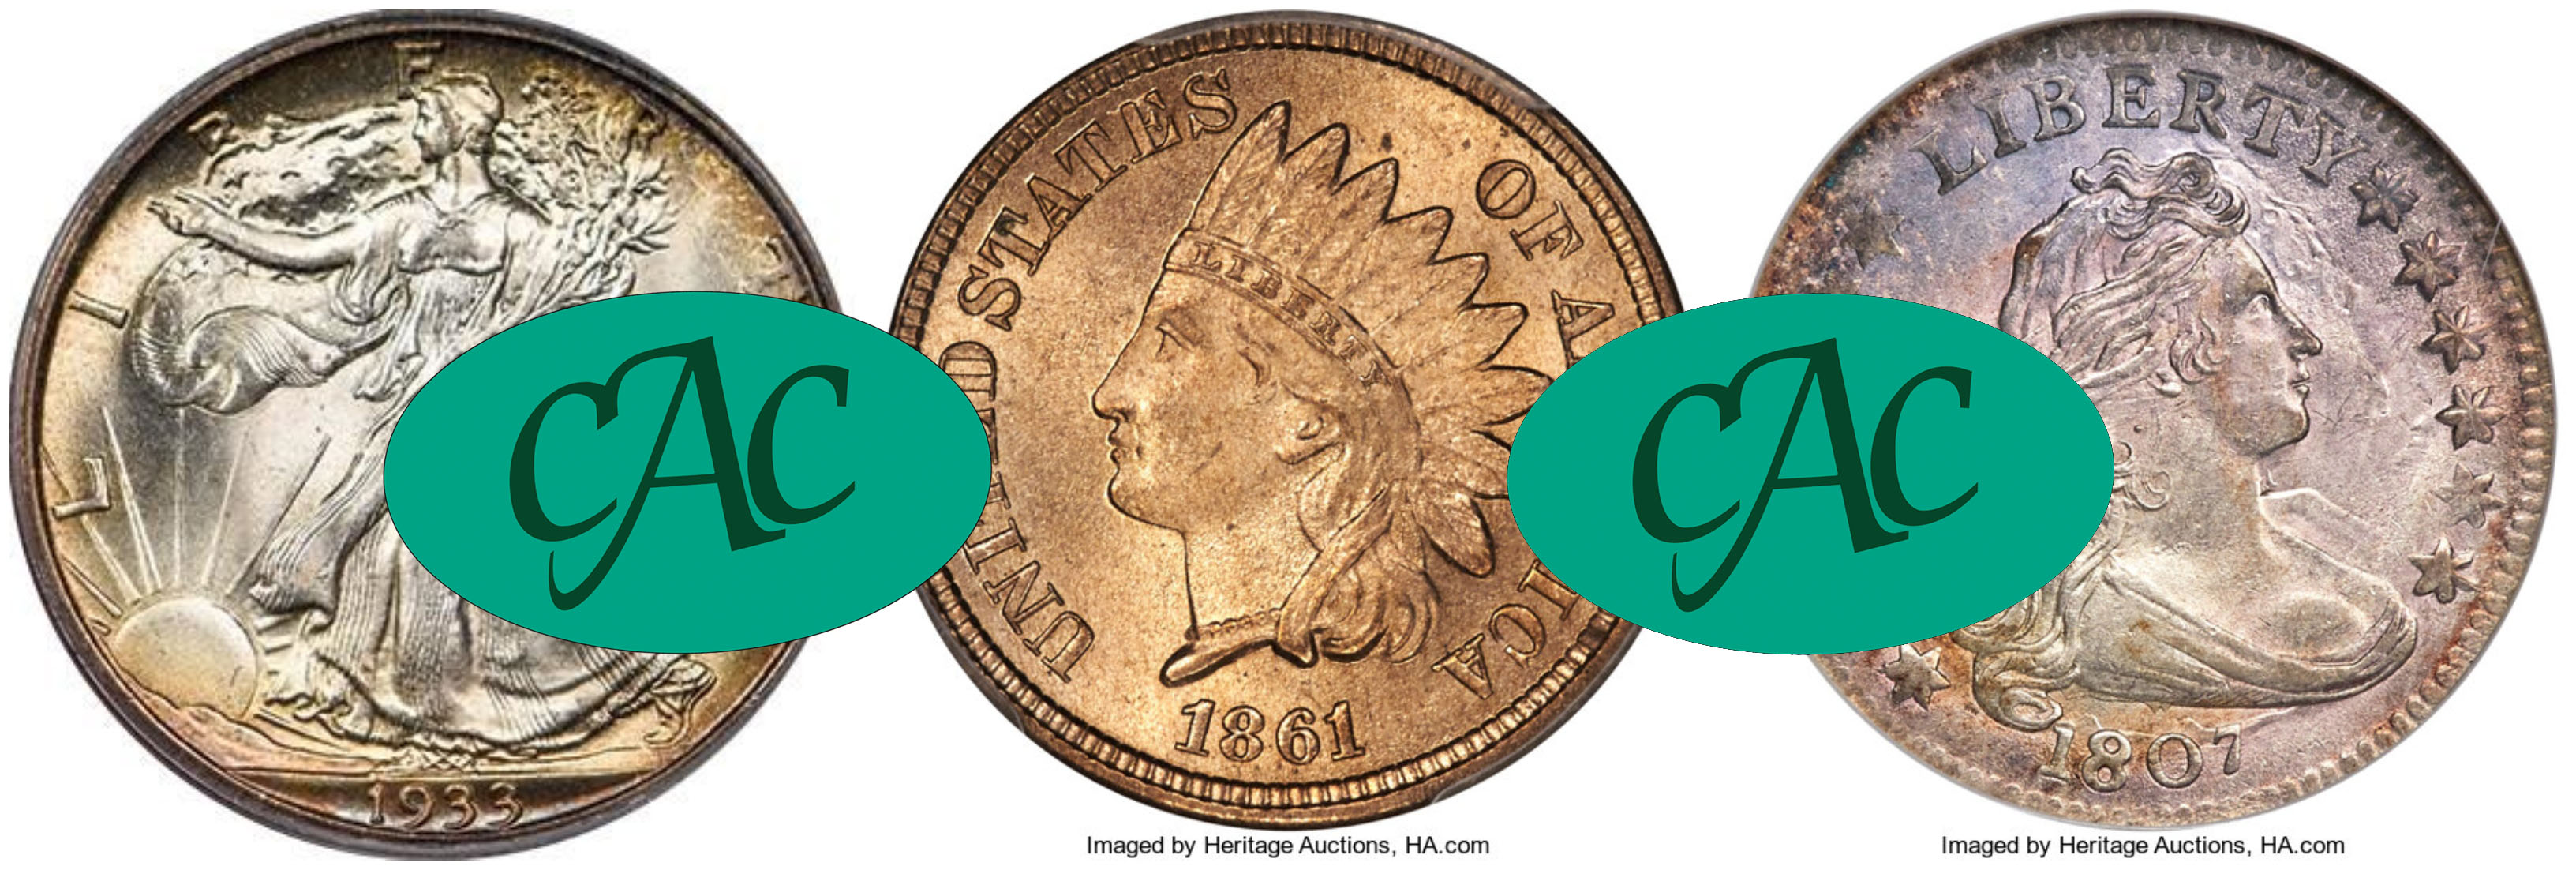 CAC approved coins outperformed other certified coins in live auctions in Las Vegas and Dallas.